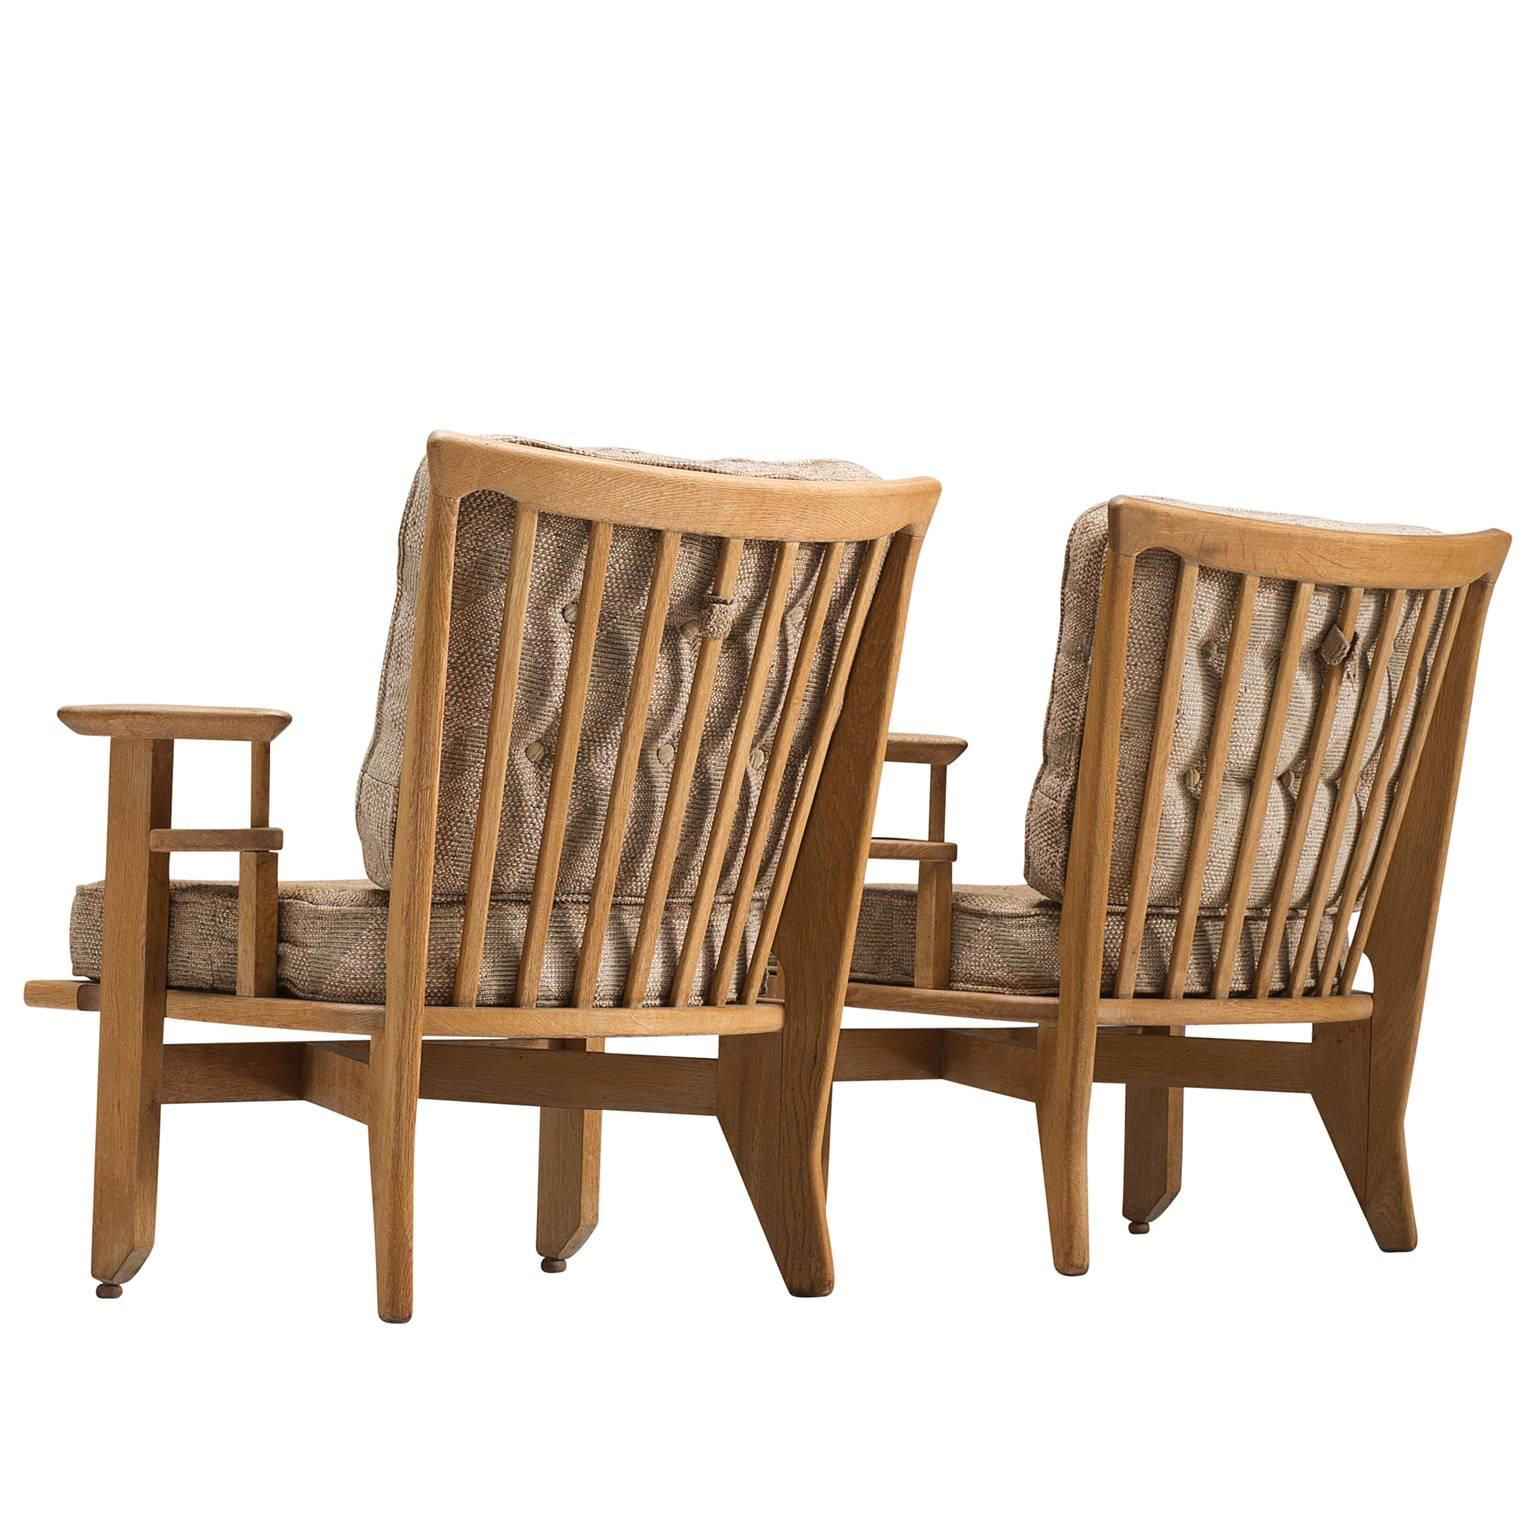 Guillerme U0026amp; Chambron Carved Solid Oak Chairs